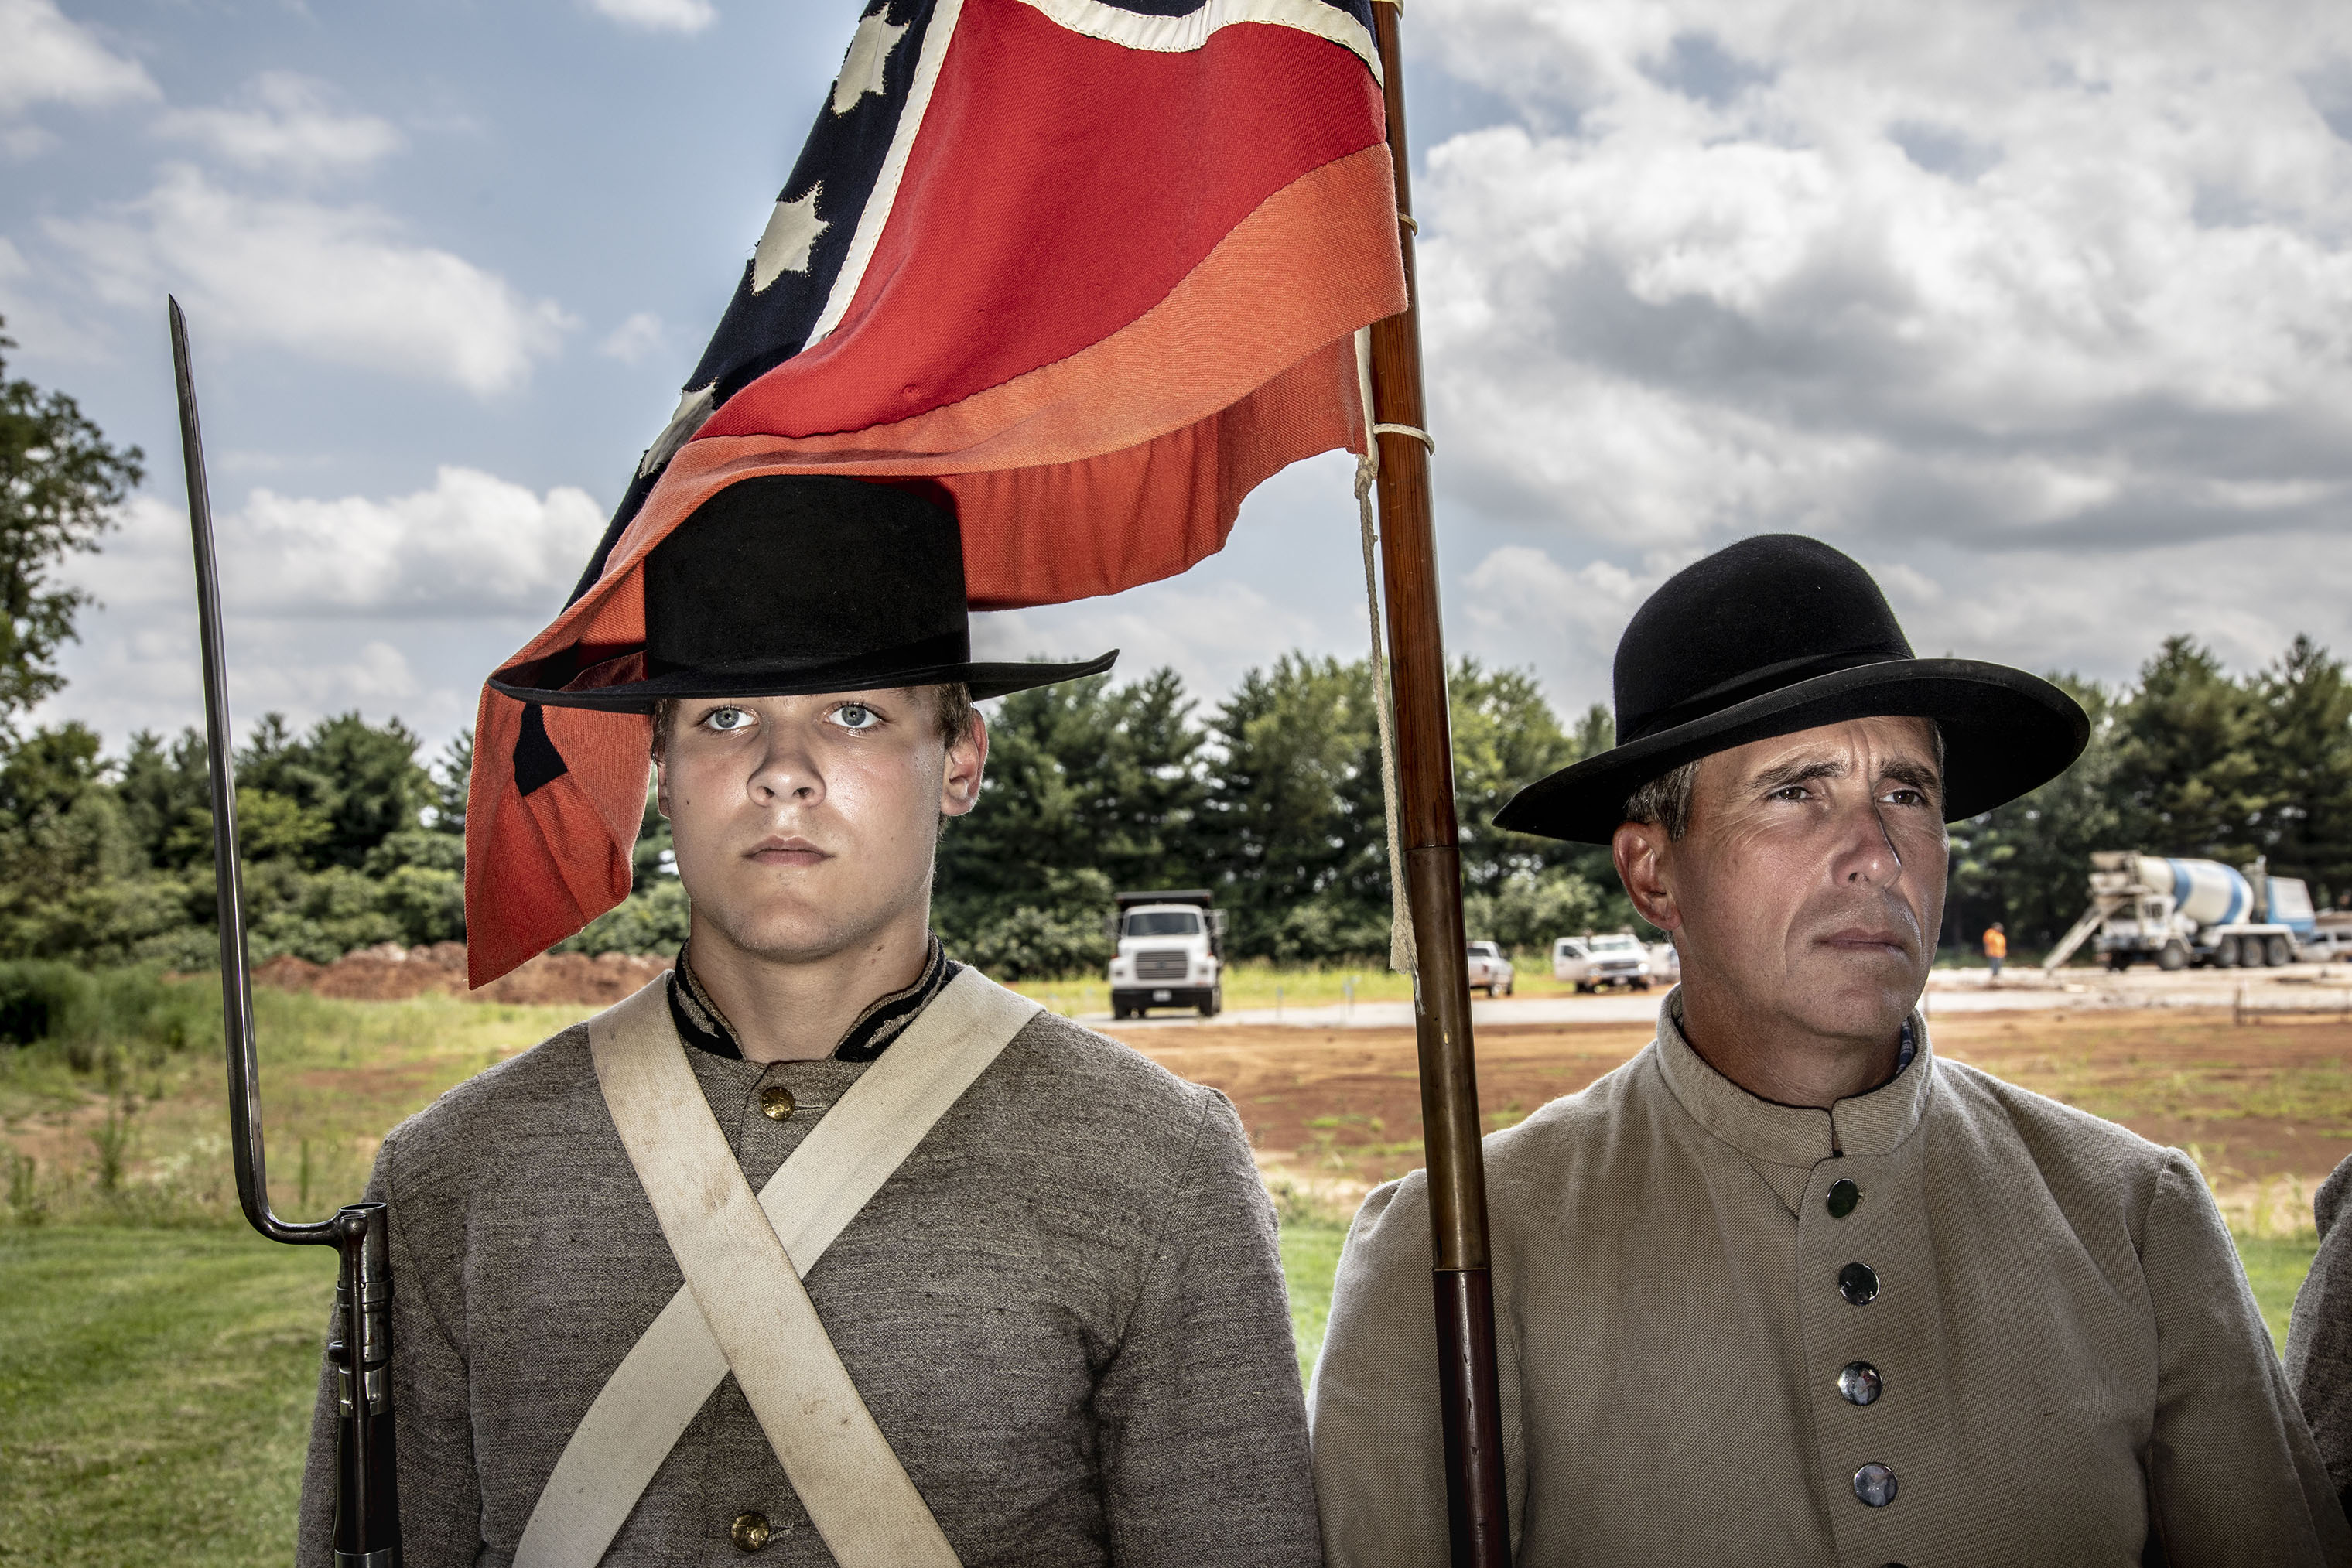 Reenactors at the museum's dedication.